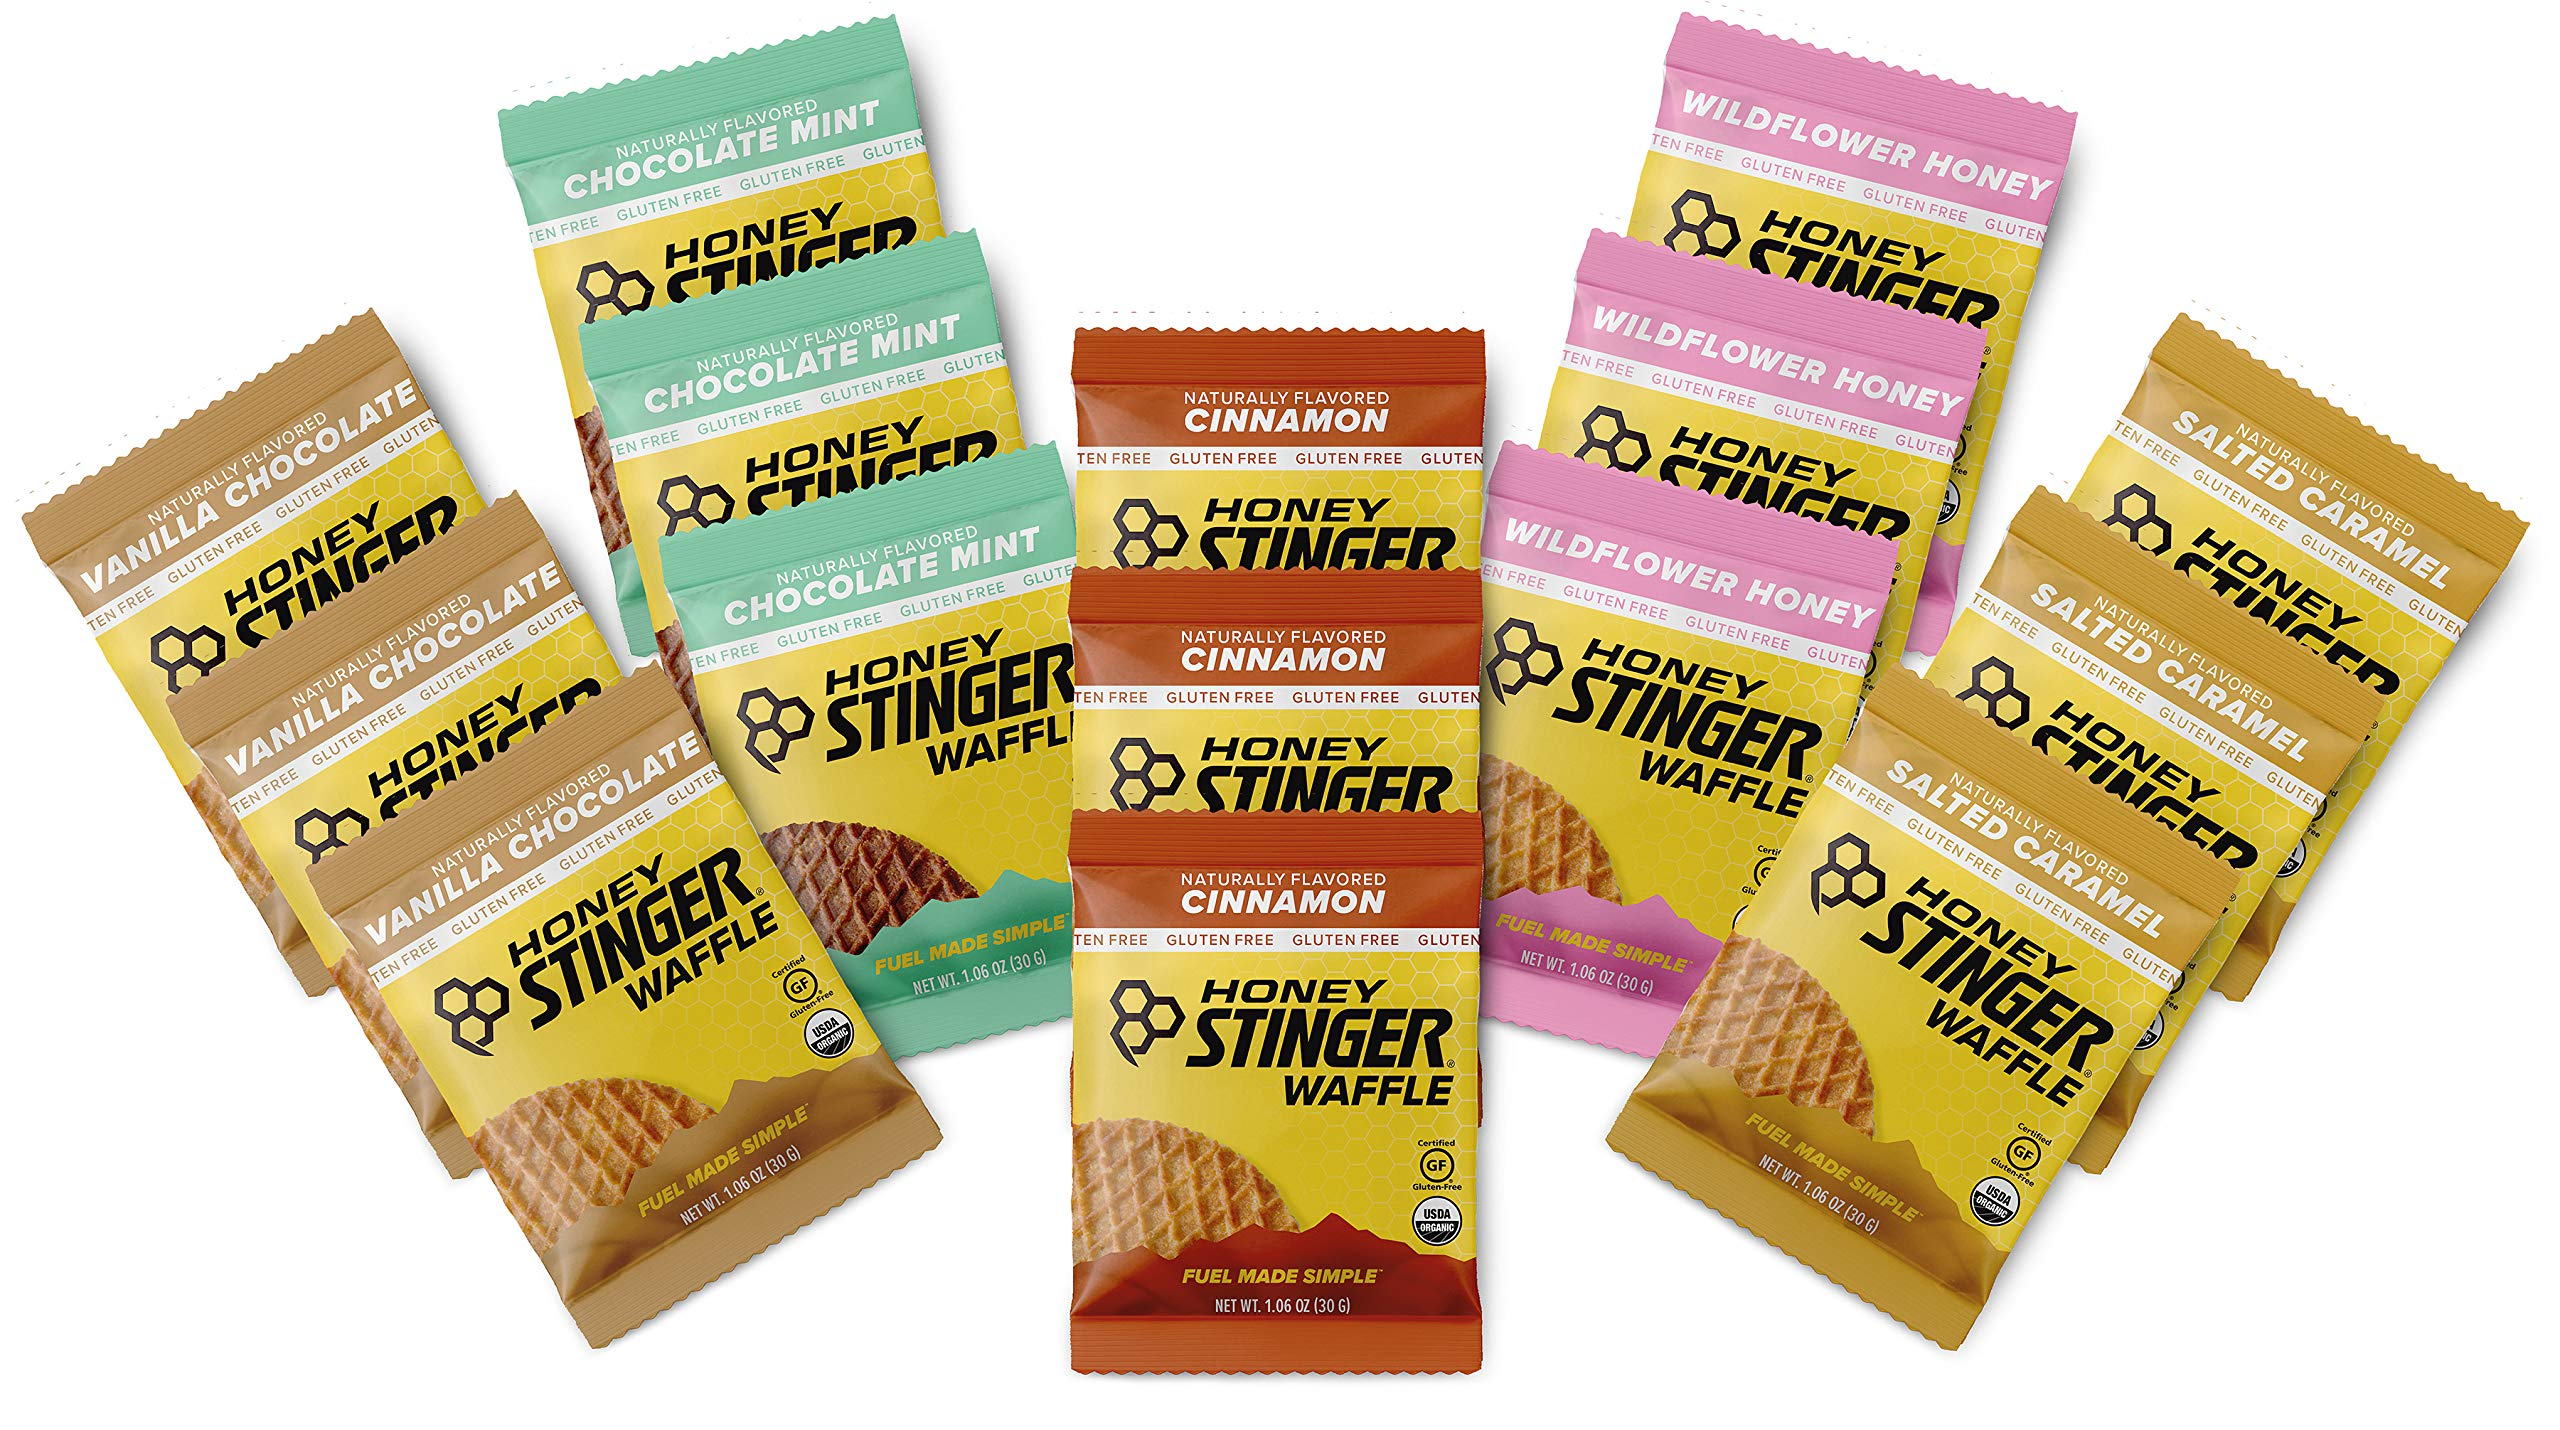 Honey Stinger Gluten Free Organic Waffles - Variety Pack - 15 Count - 3 of Each Flavor - Energy Source for Any Activity-Vanilla & Chocolate, Wildflower Honey, Chocolate Mint, Salted Caramel & Cinnamon by Honey Stinger